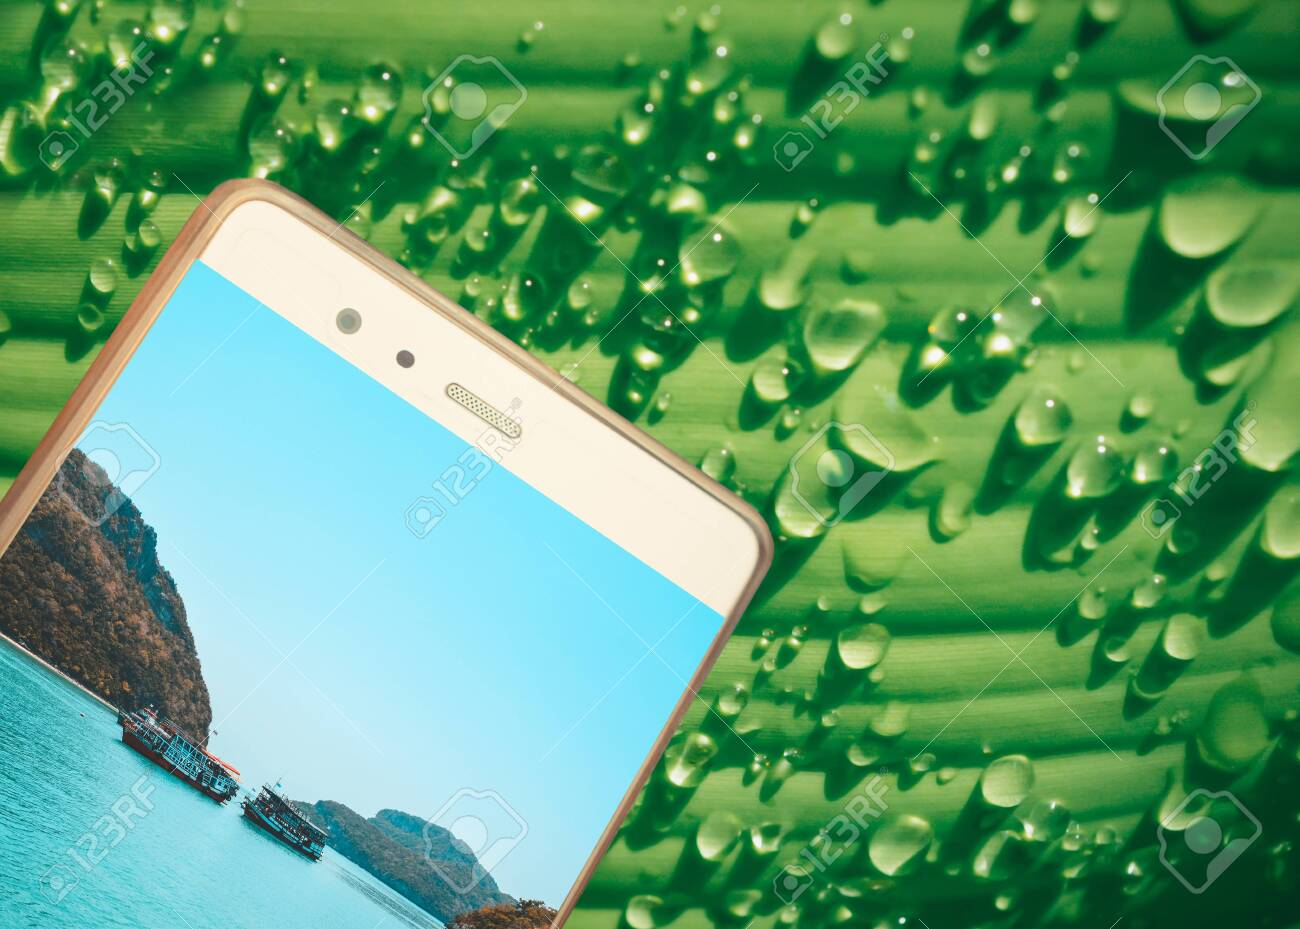 mobile with island picture on green leaf with dew drop texture